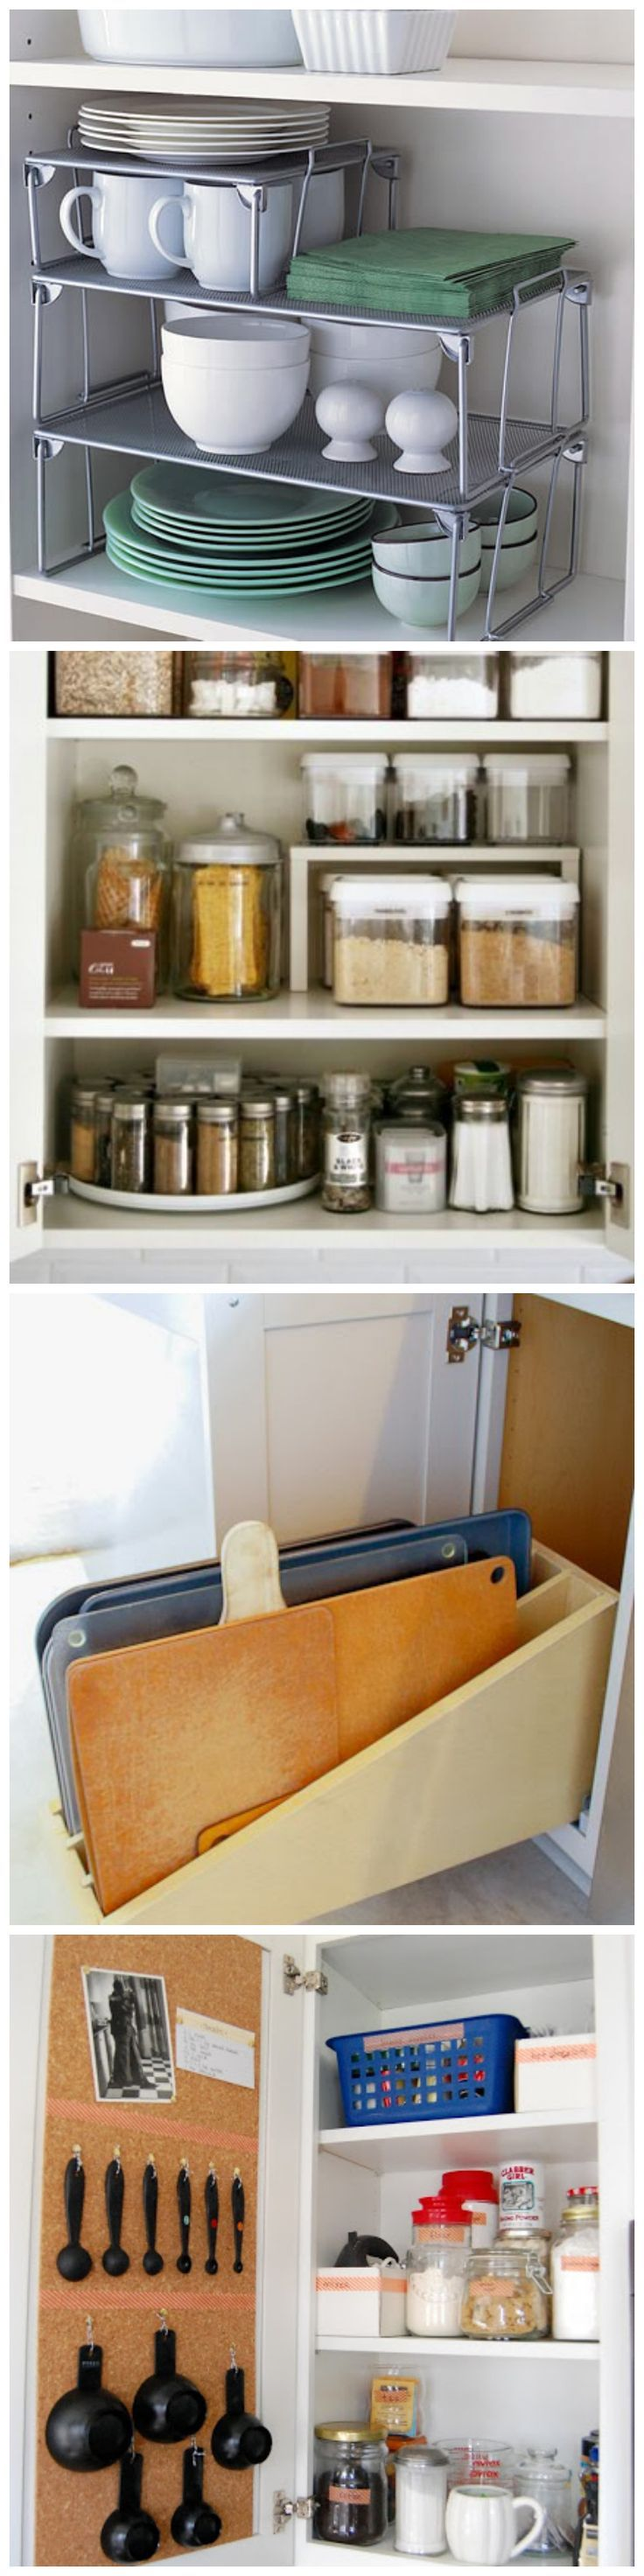 18 Organizing Ideas That Make The Most Out Of Your Cabinets Apartment Kitchen